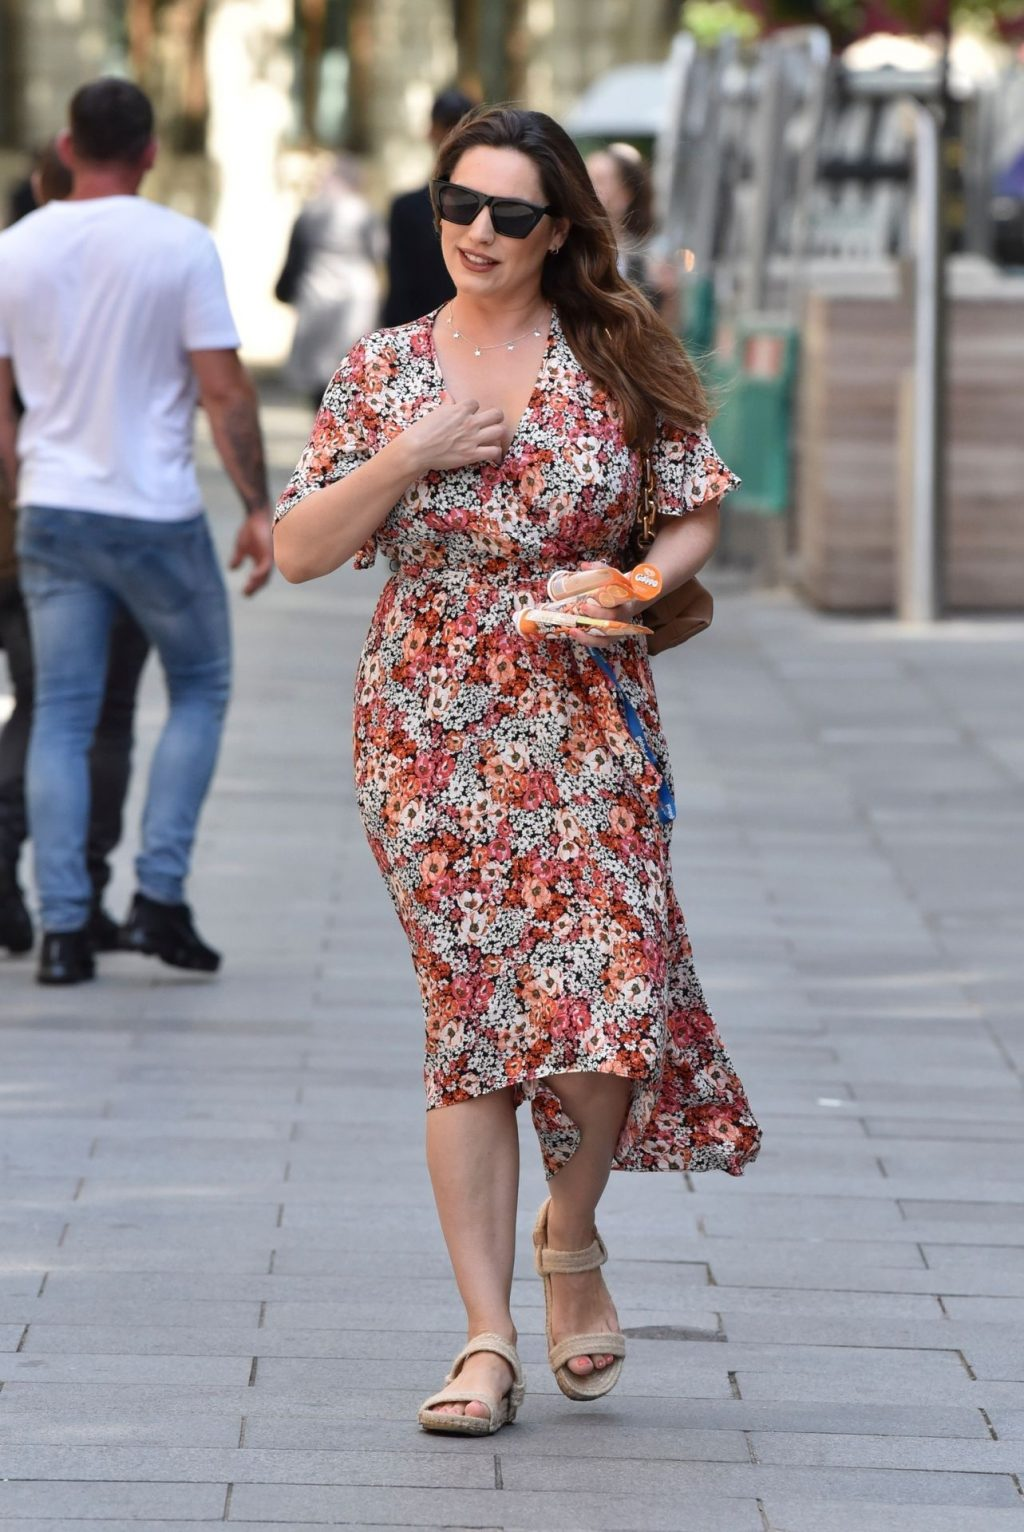 Kelly Brook Hides Her Sexy Boobs From The Paparazzi (49 Photos)